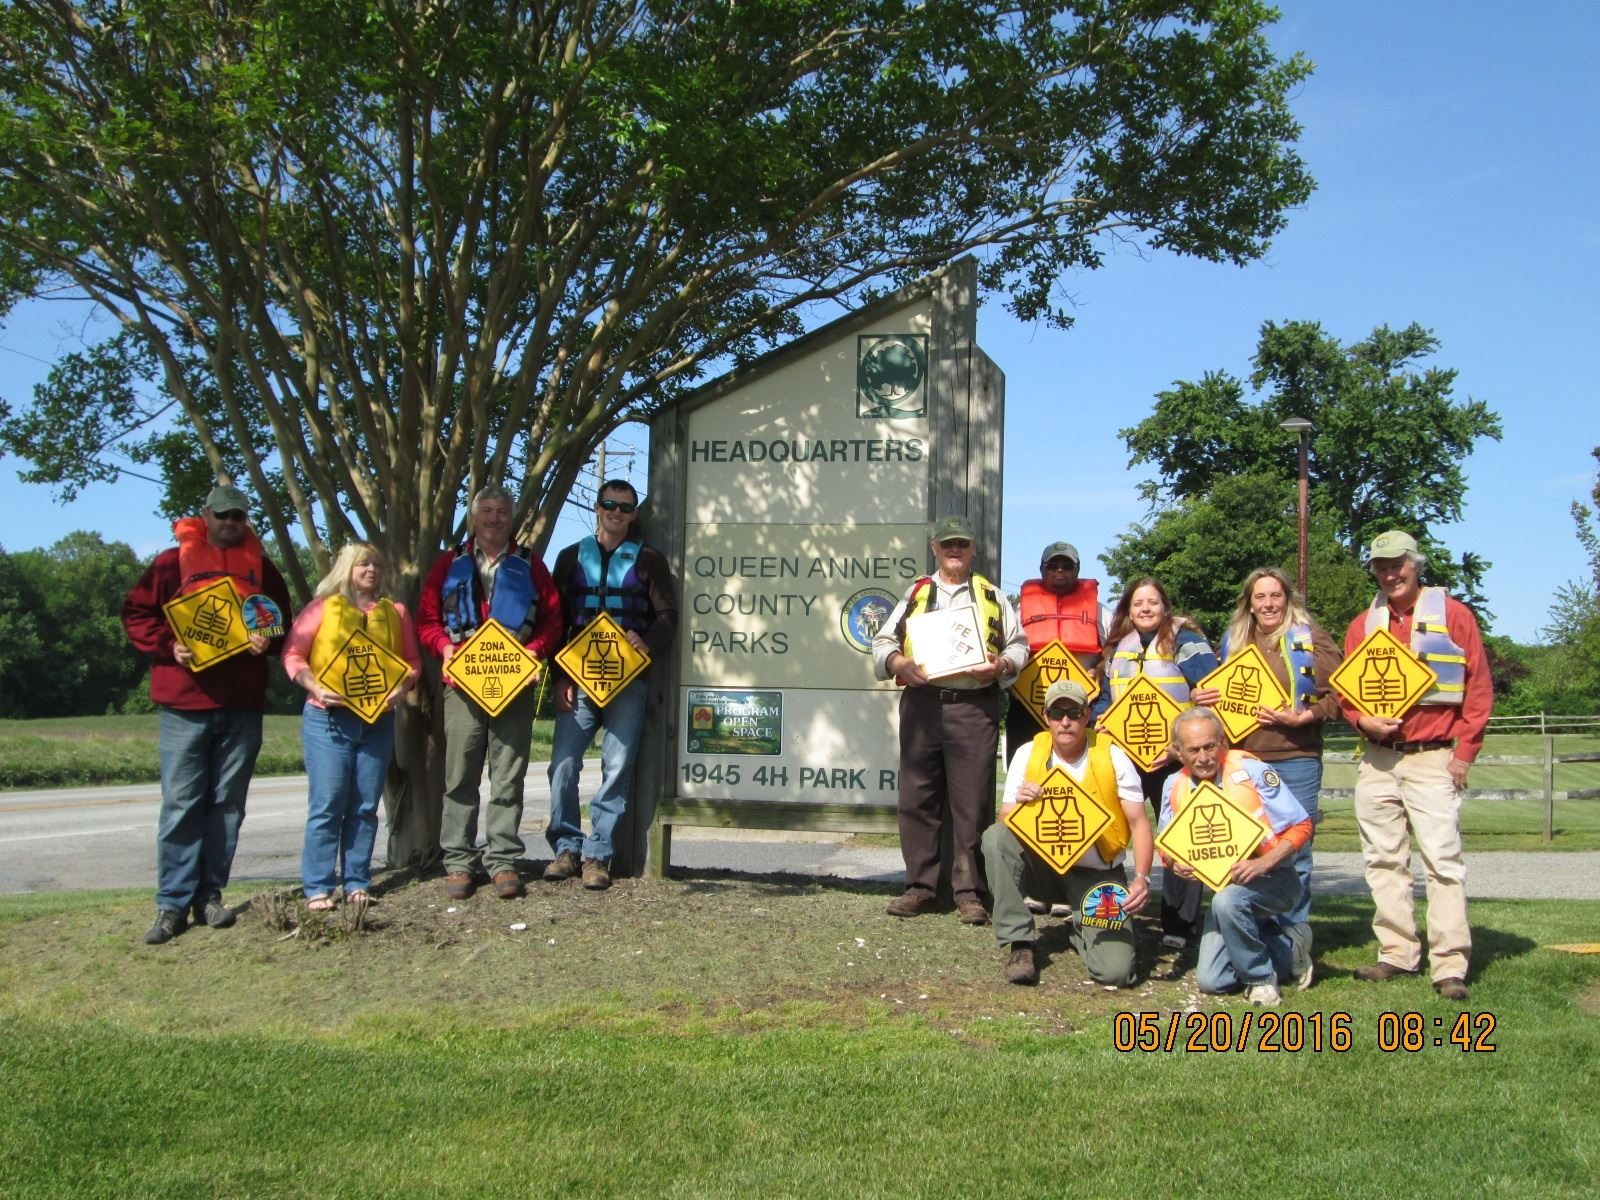 QA Parks Dept_Wear Life Preserver to Work Day_May 20 2016 005